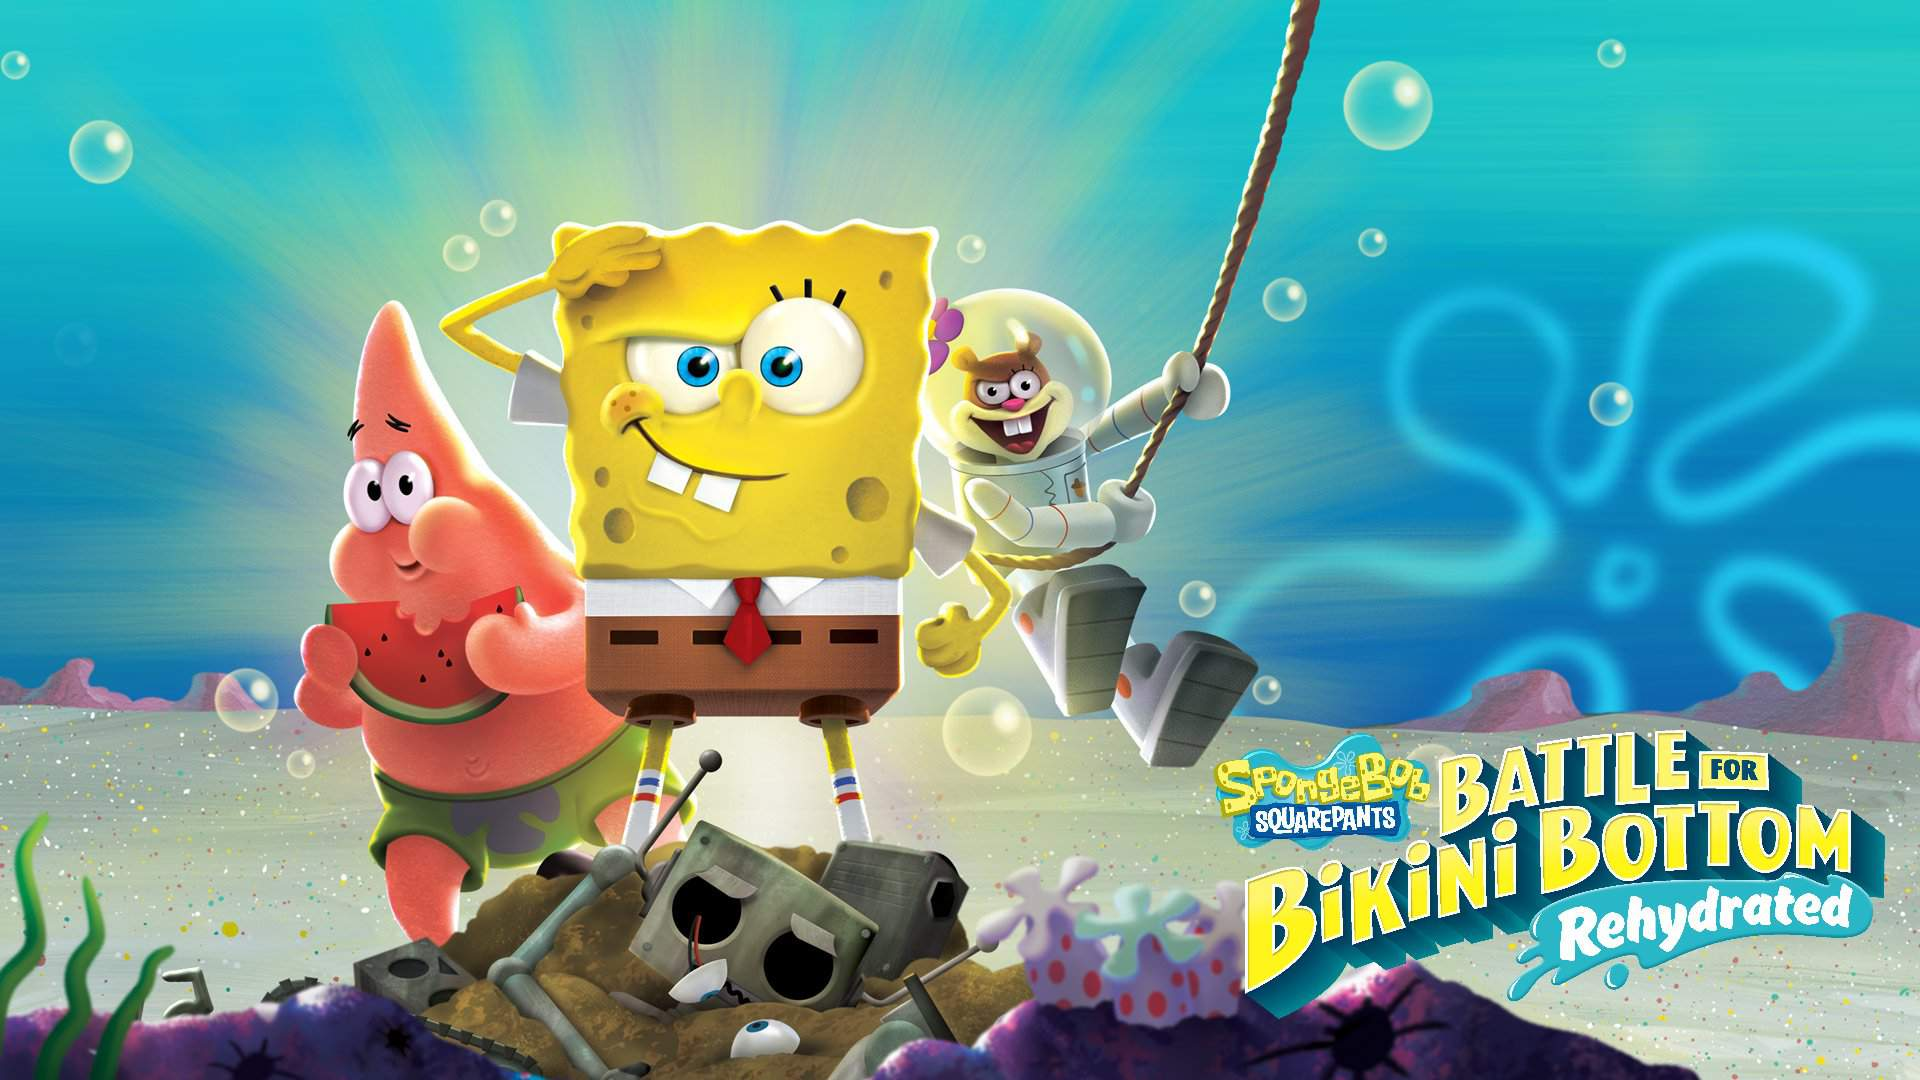 SpongeBob SquarePants: Battle for Bikini Bottom – Rehydrated | Se revela el primer gameplay del juego.